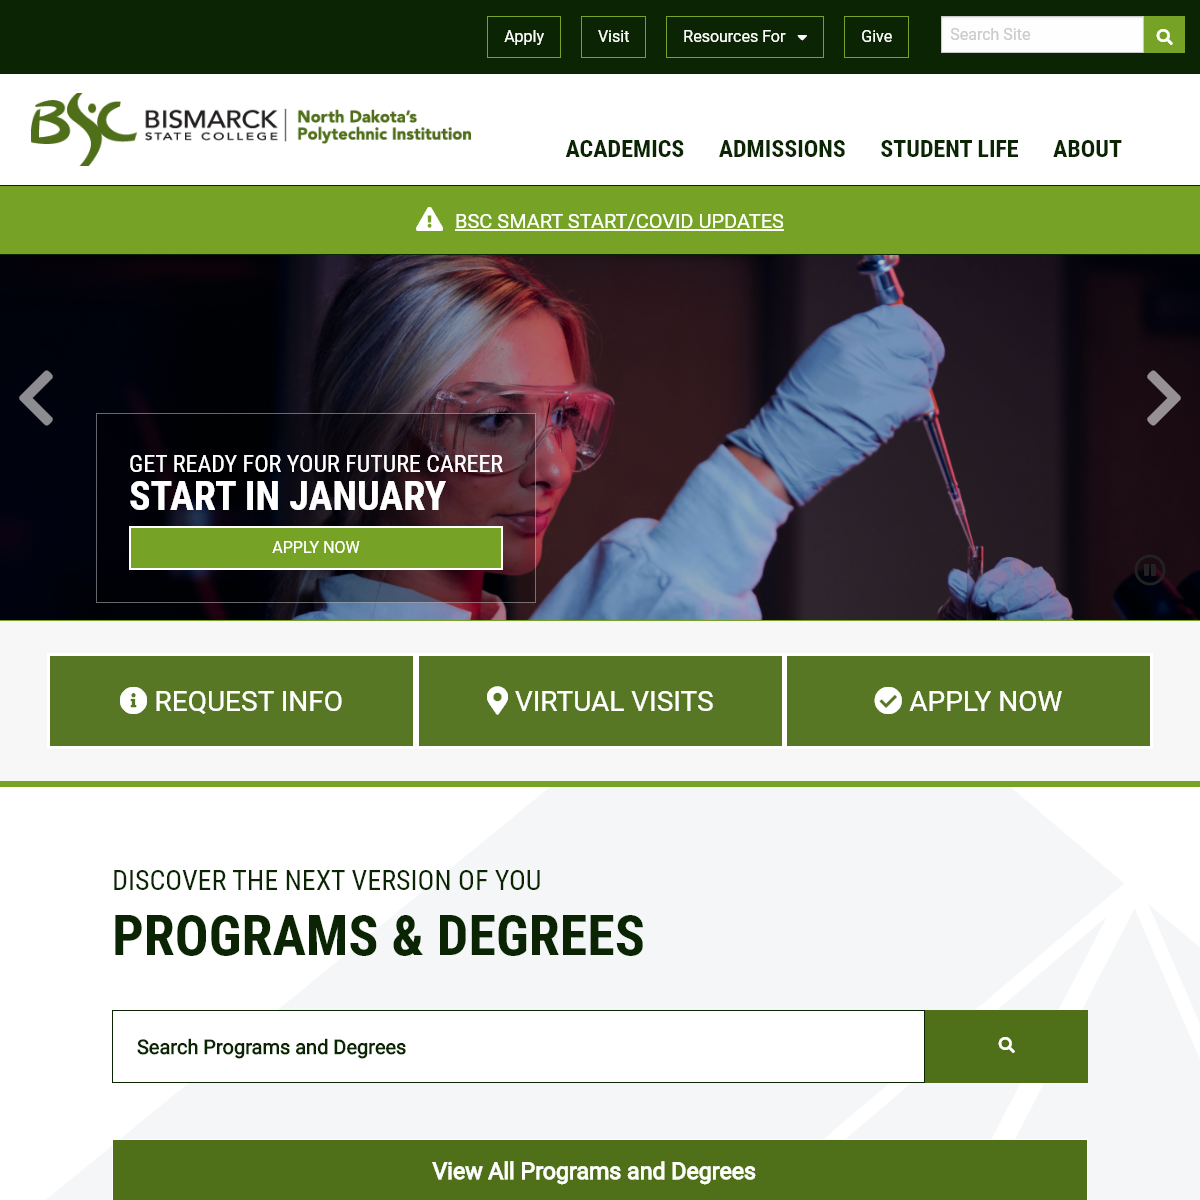 Bismarck State College - Discover the Next Version of You